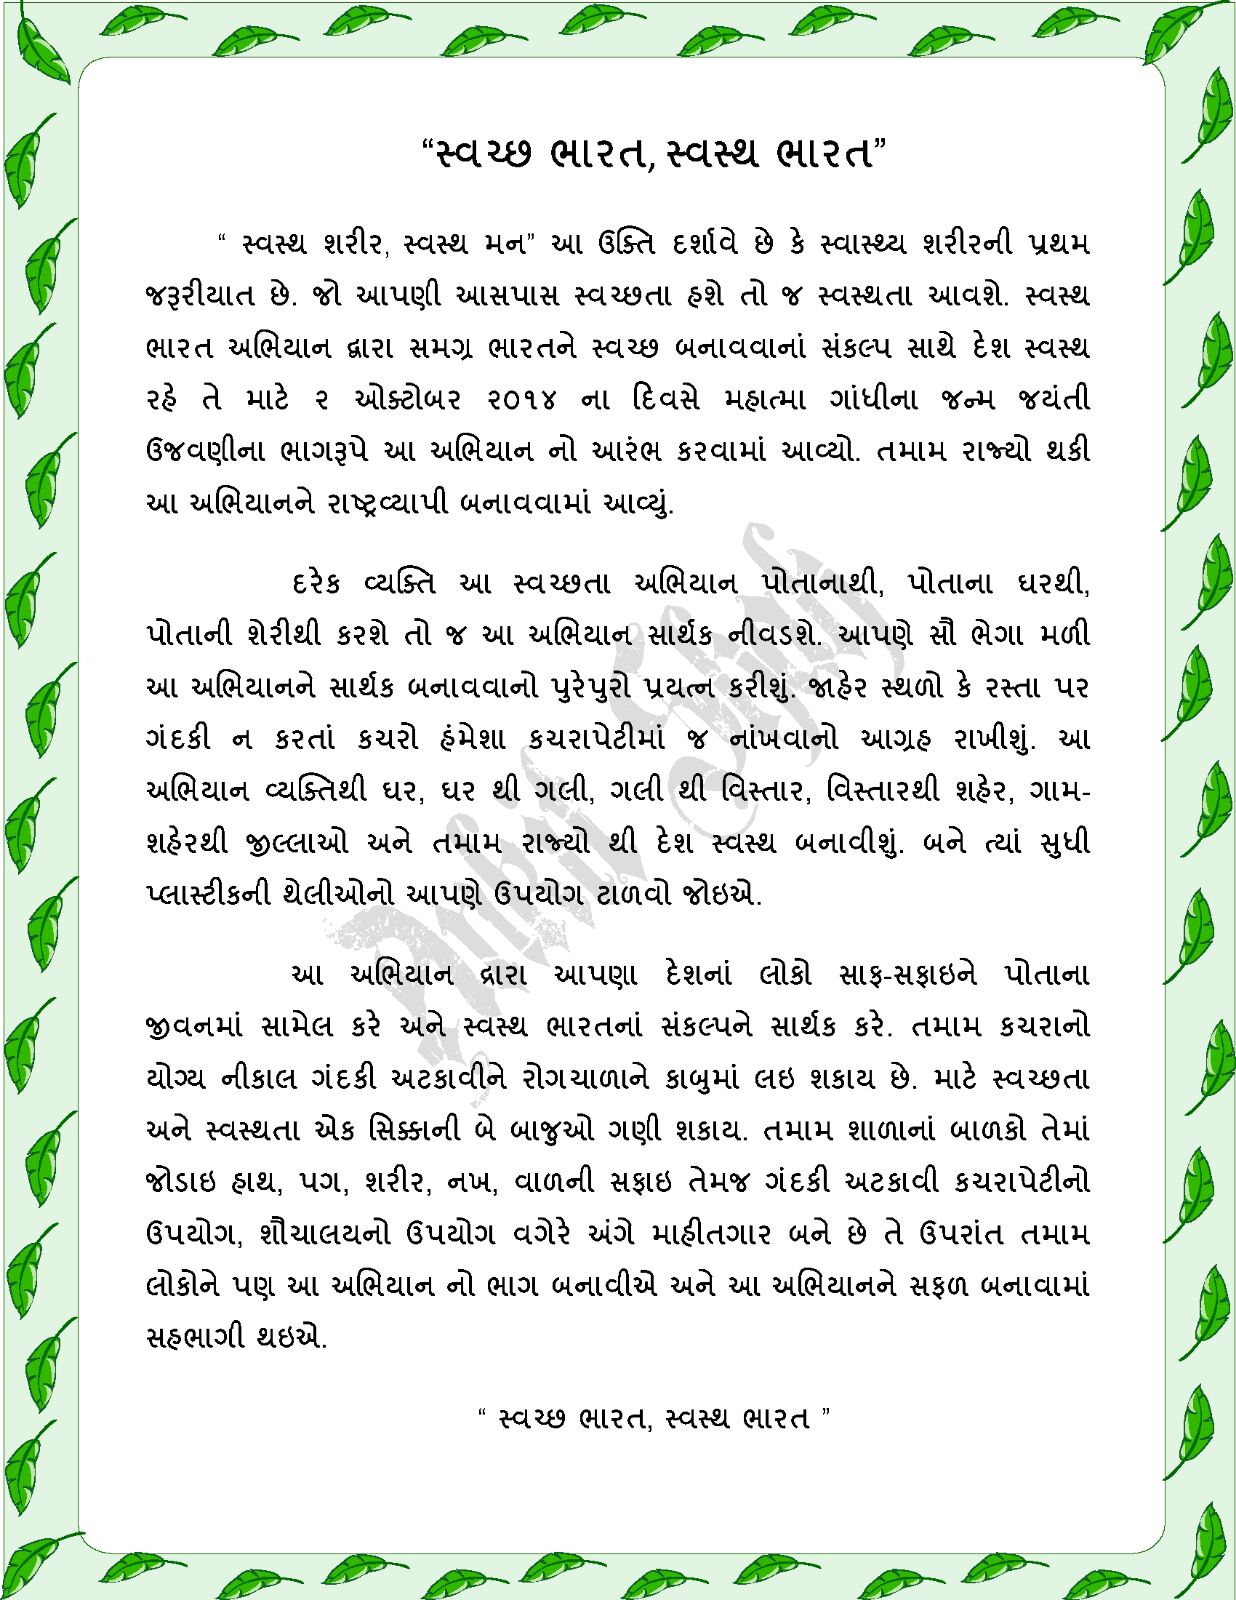 essay on swachh bharat swasth bharat in gujarati